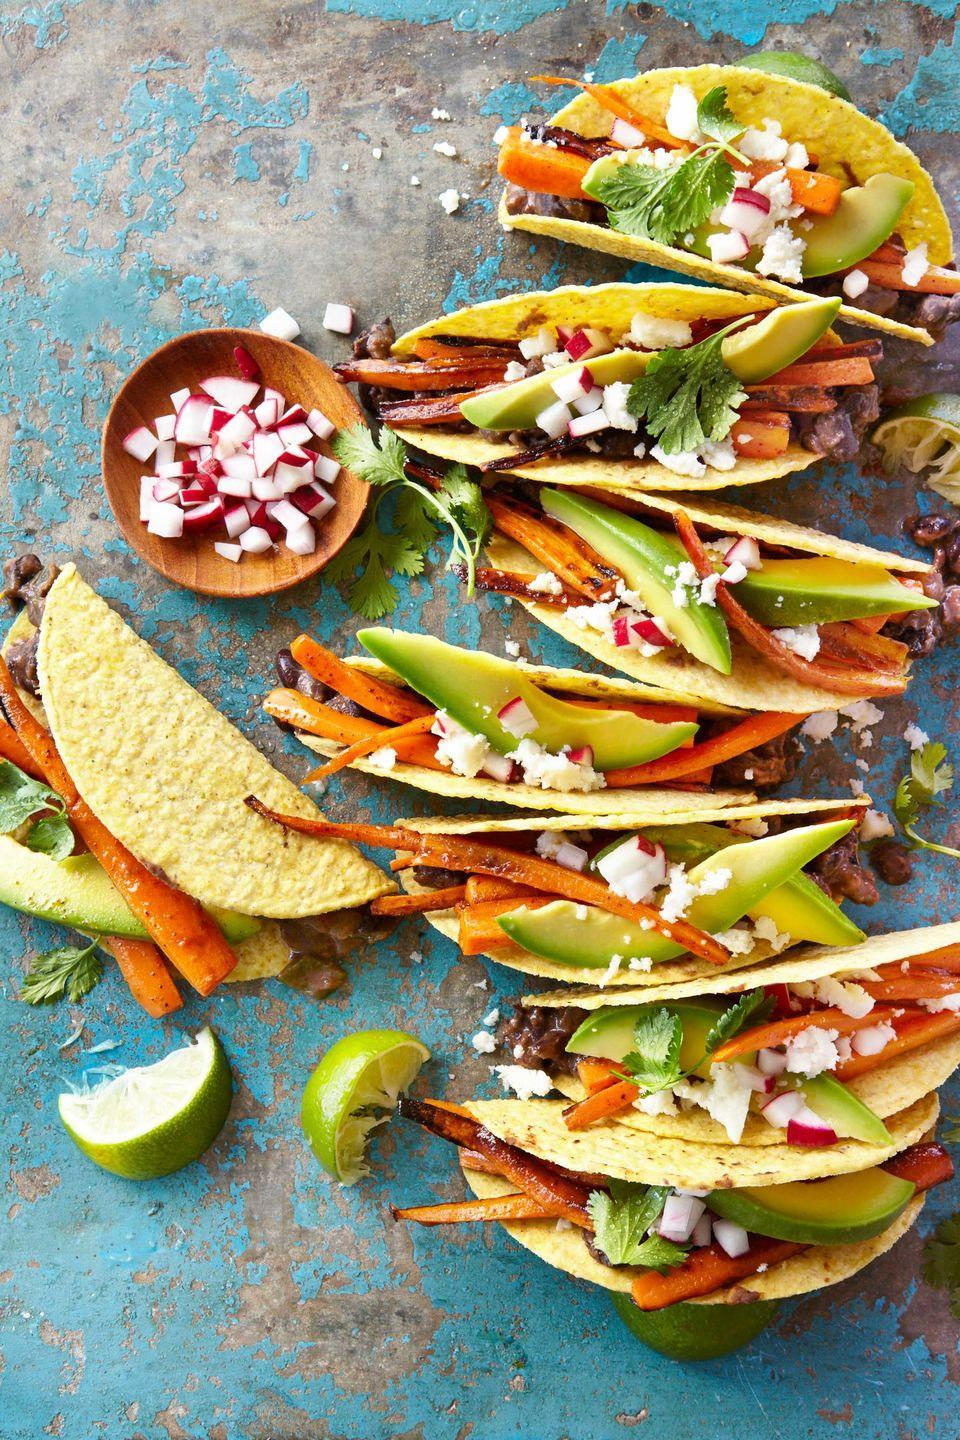 "<p>Mashed black beans, flavored with plenty of spice, make the base for these super tasty, super crunchy vegetarian tacos.</p><p><strong><a href=""https://www.countryliving.com/food-drinks/recipes/a39363/carrot-and-black-bean-crispy-tacos-recipe/"" rel=""nofollow noopener"" target=""_blank"" data-ylk=""slk:Get the recipe"" class=""link rapid-noclick-resp"">Get the recipe</a>.</strong></p>"